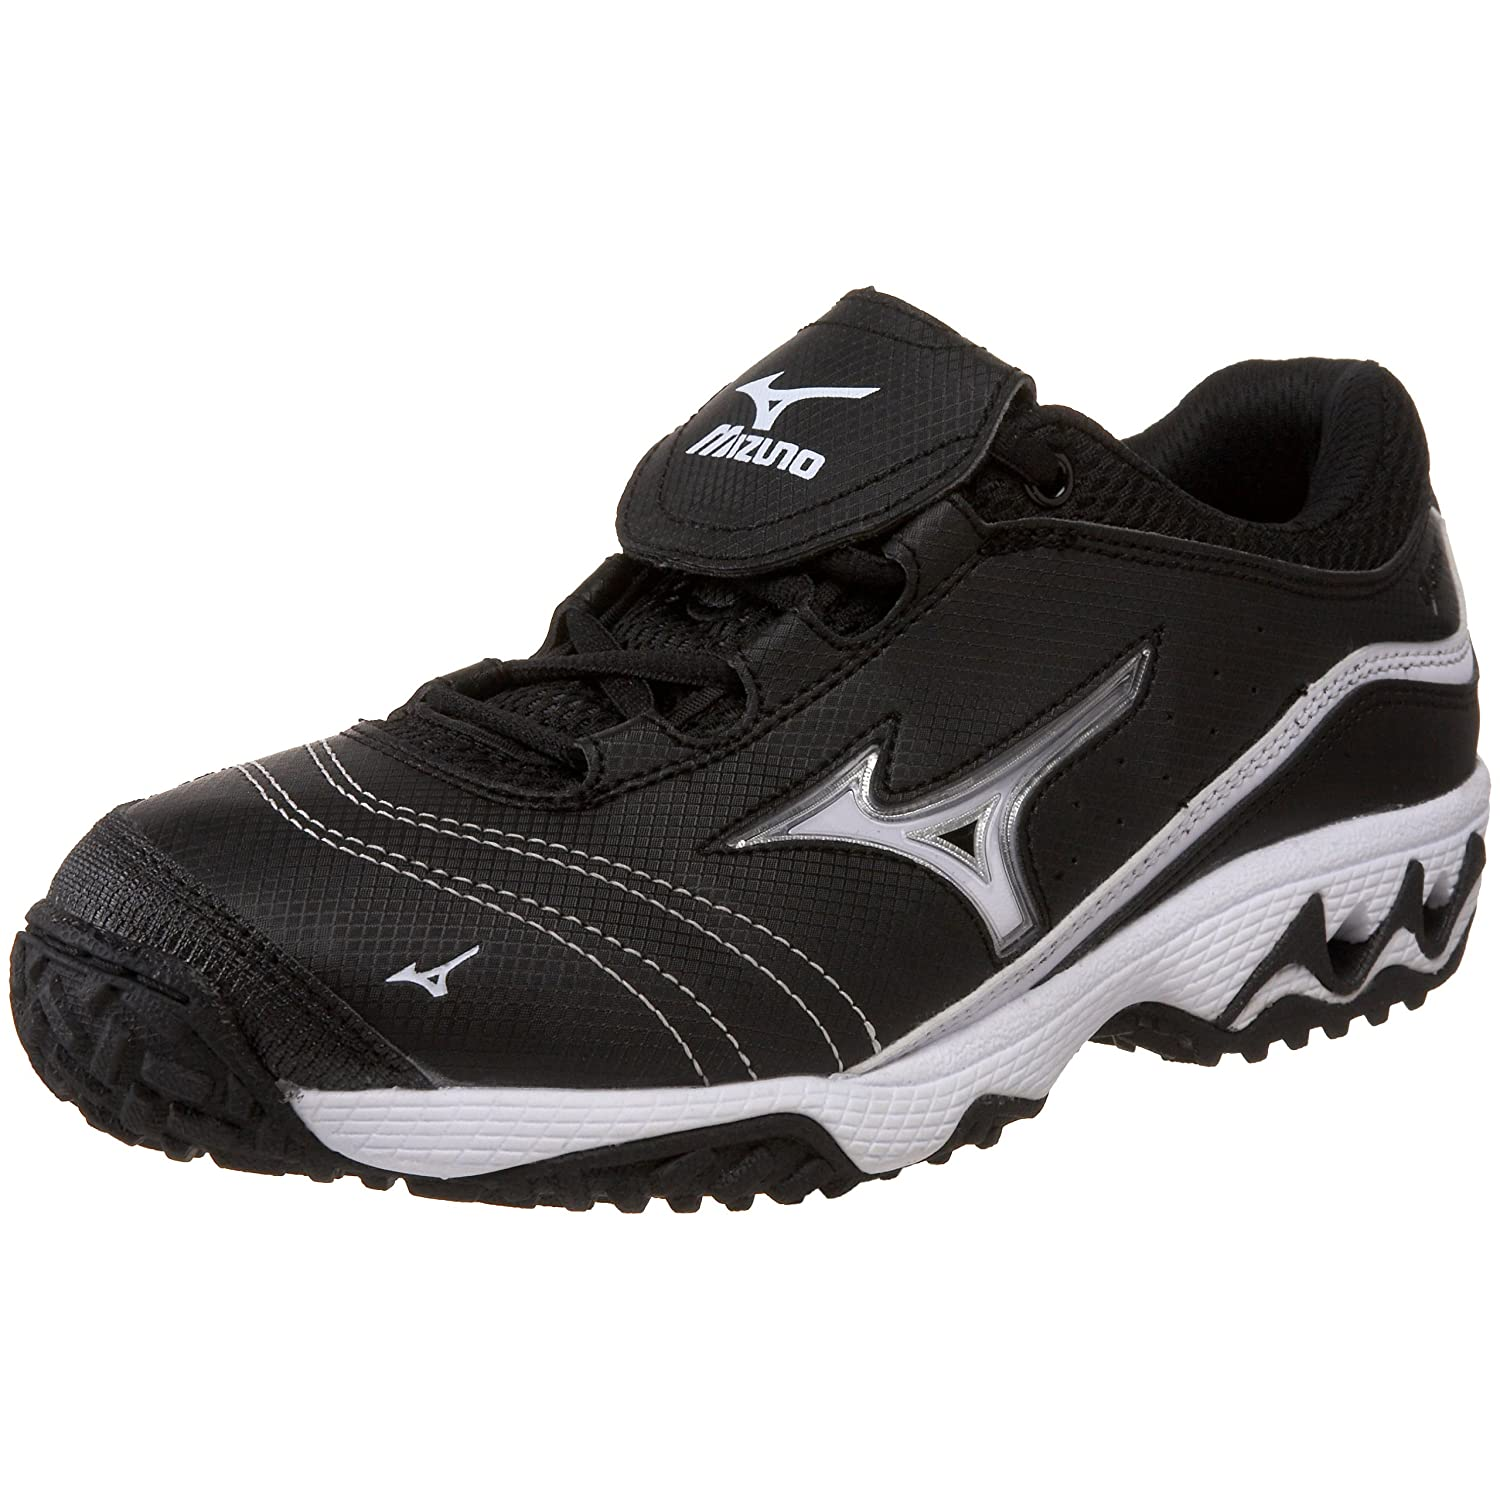 mizuno womens volleyball shoes size 8 x 3 feet vase 02